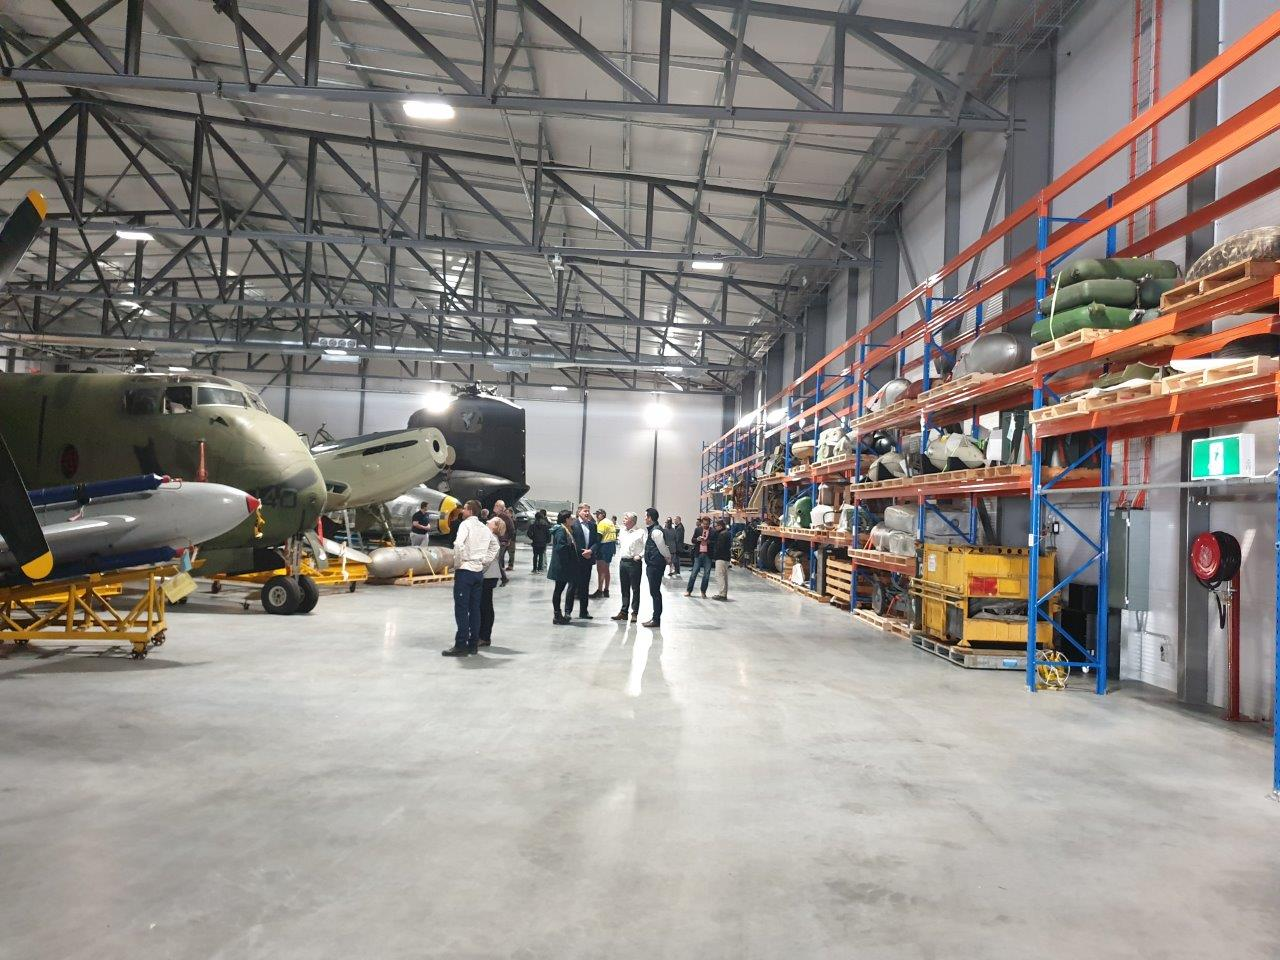 historical missile and aircraft exhibition